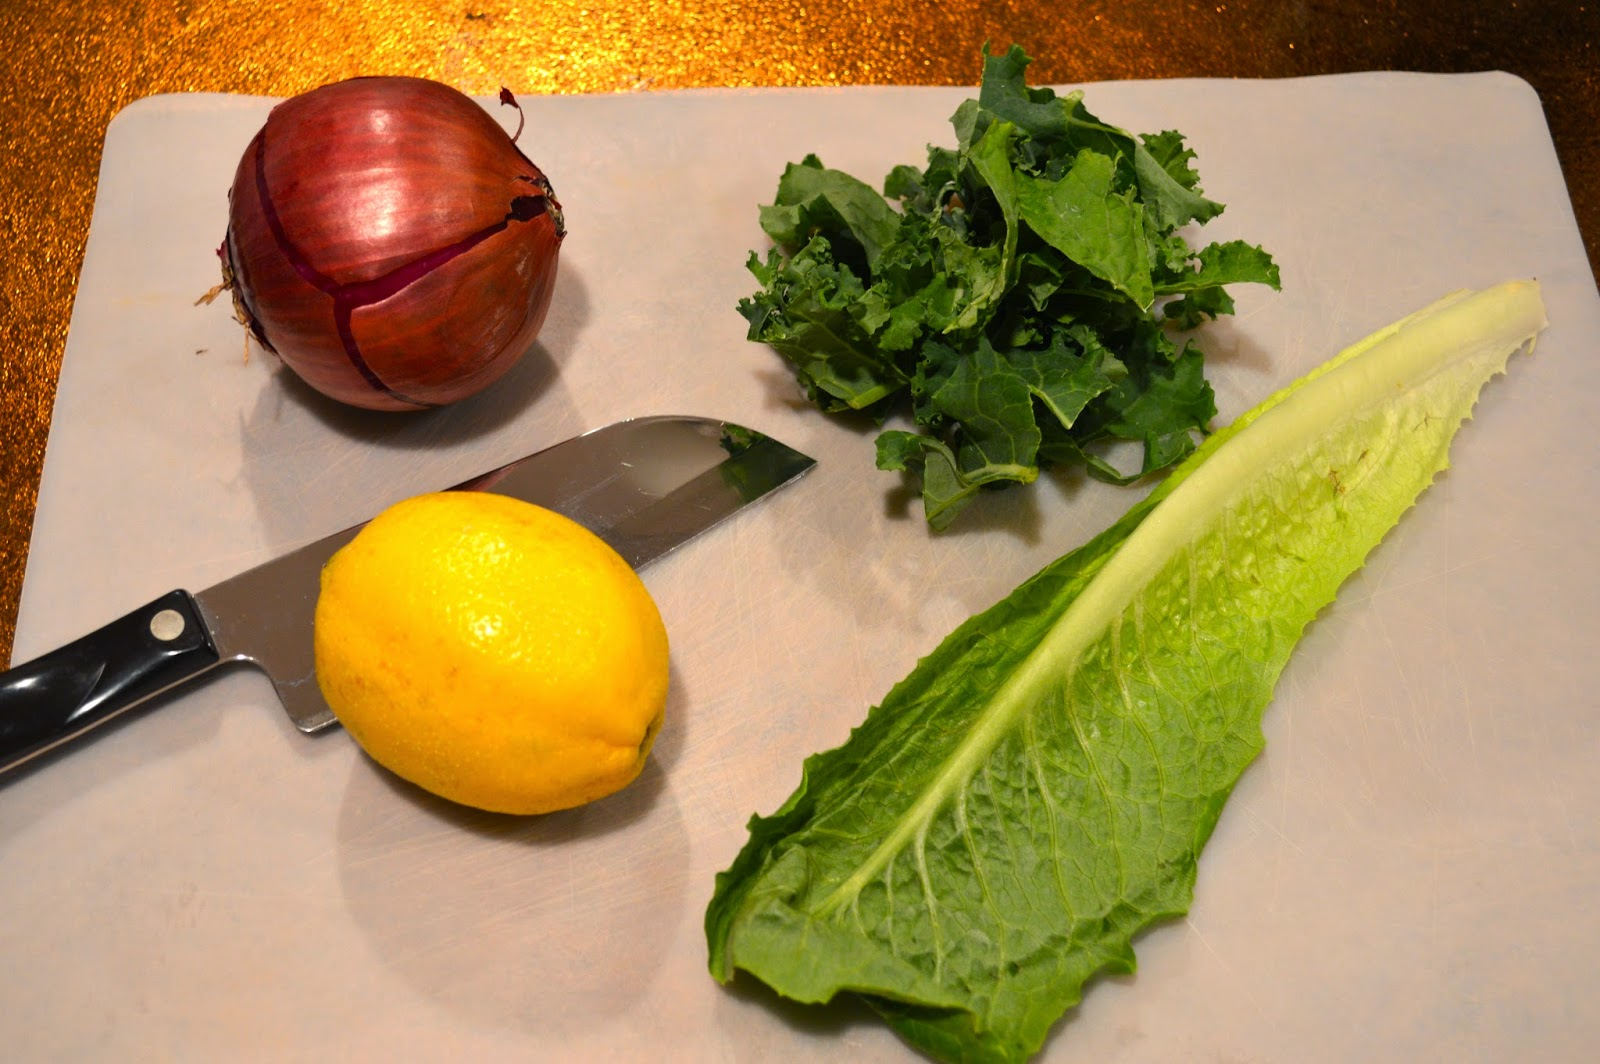 kale-caesar-salad-ingredients